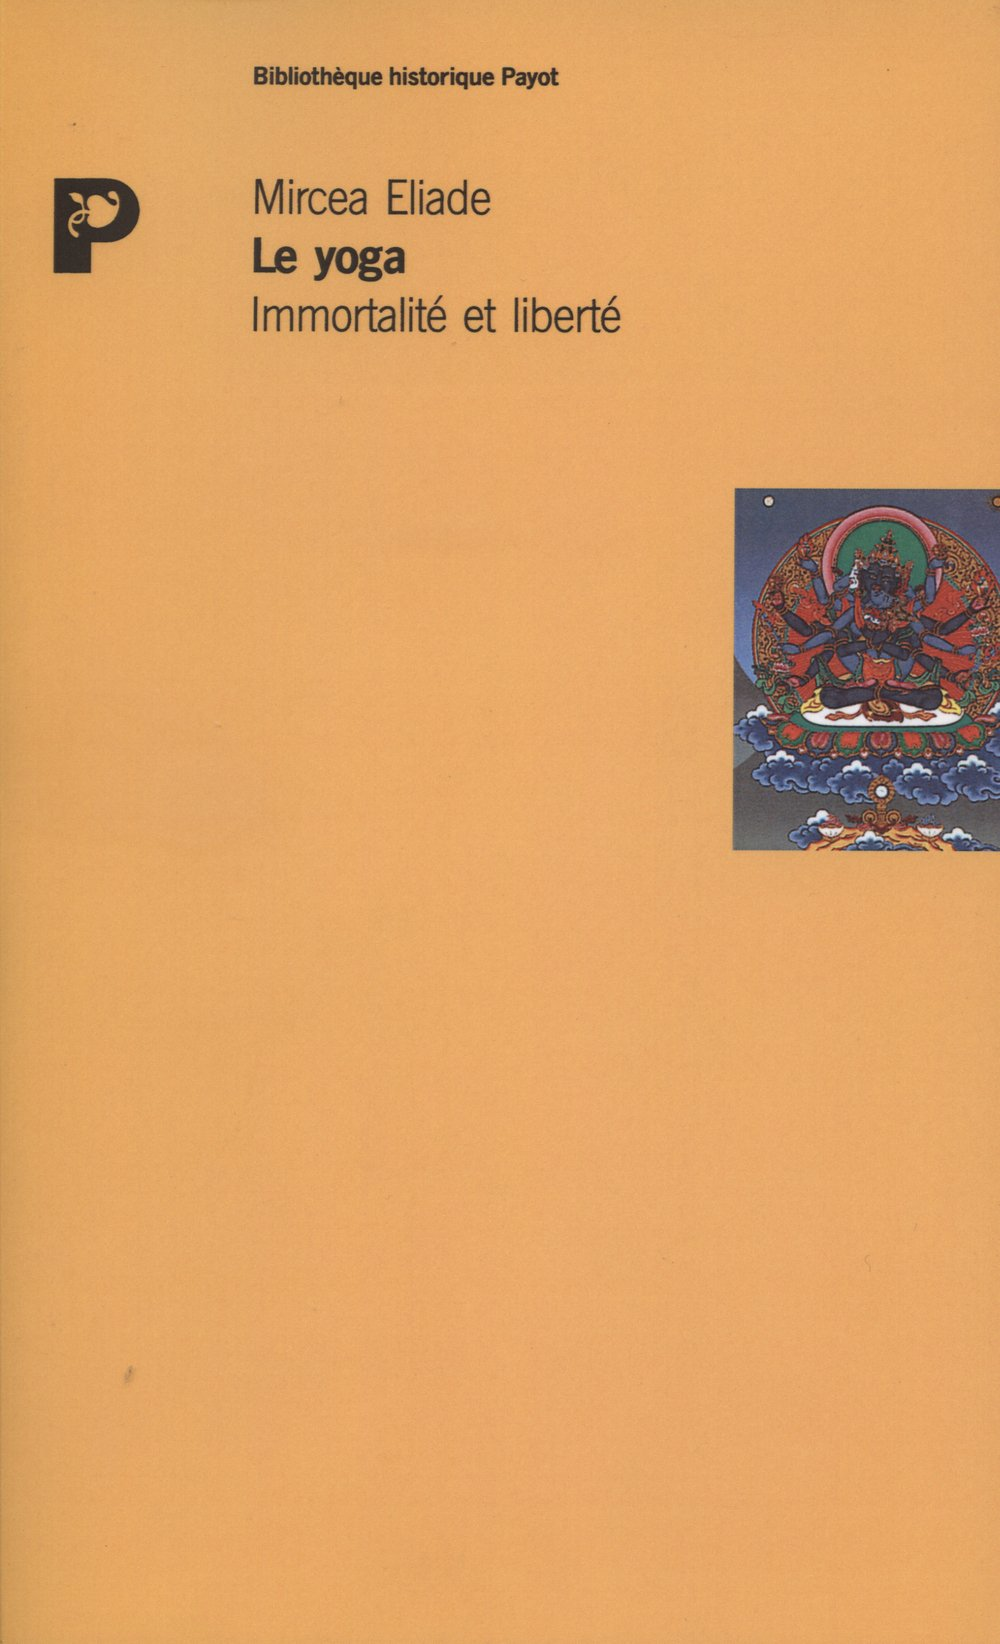 Le yoga: Mircea Eliade: 9782228883504: Amazon.com: Books